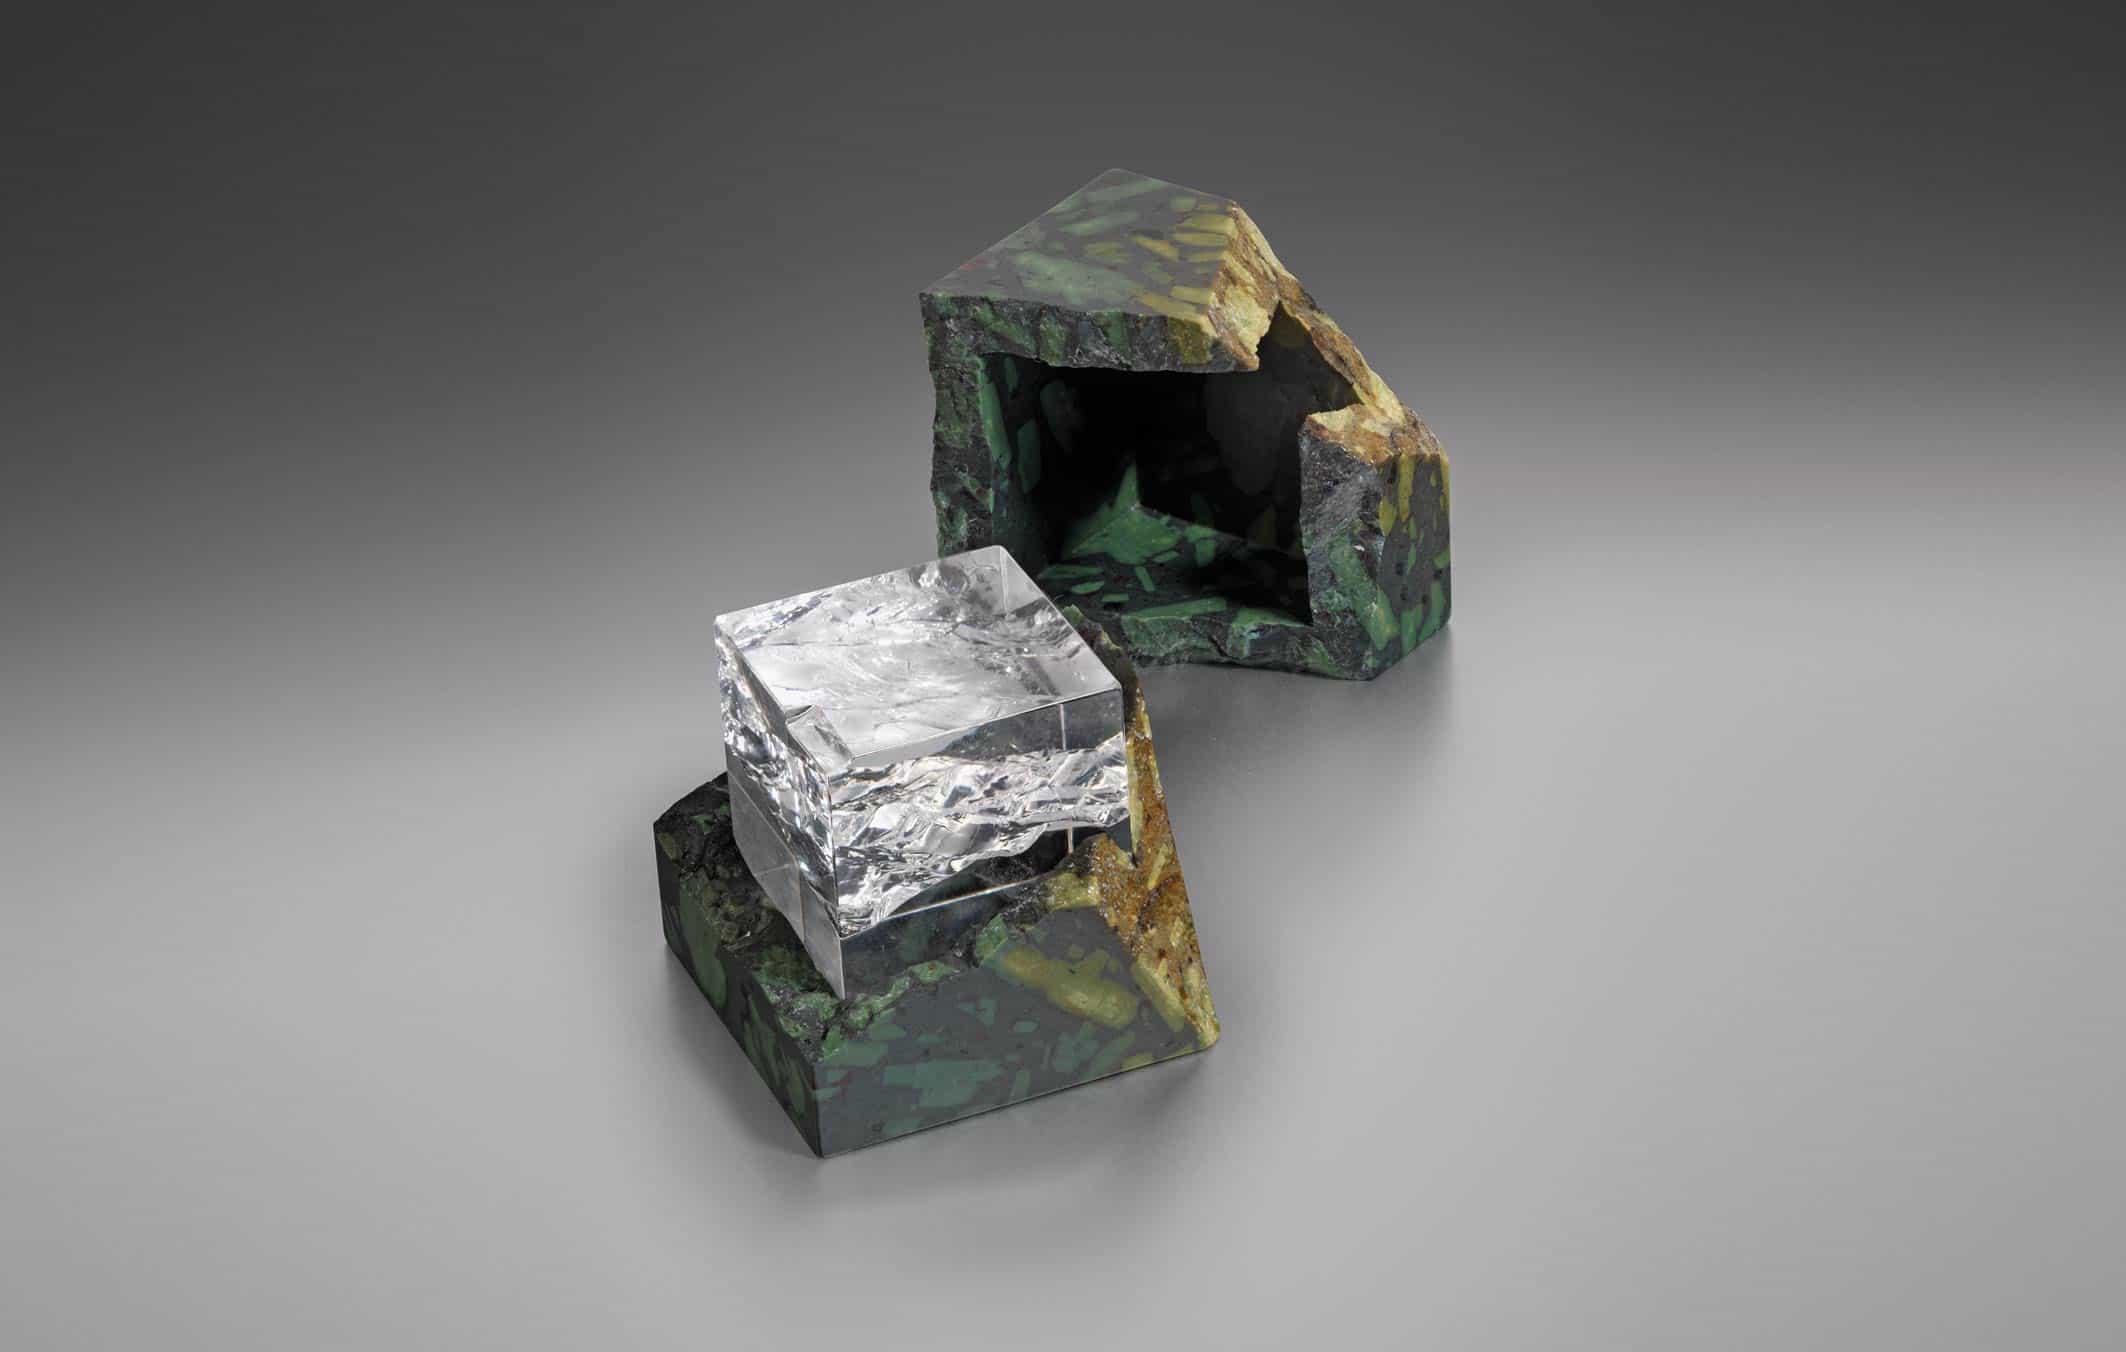 Ben Gaskell Break box porhyryr box containing a split rock-crystal cube